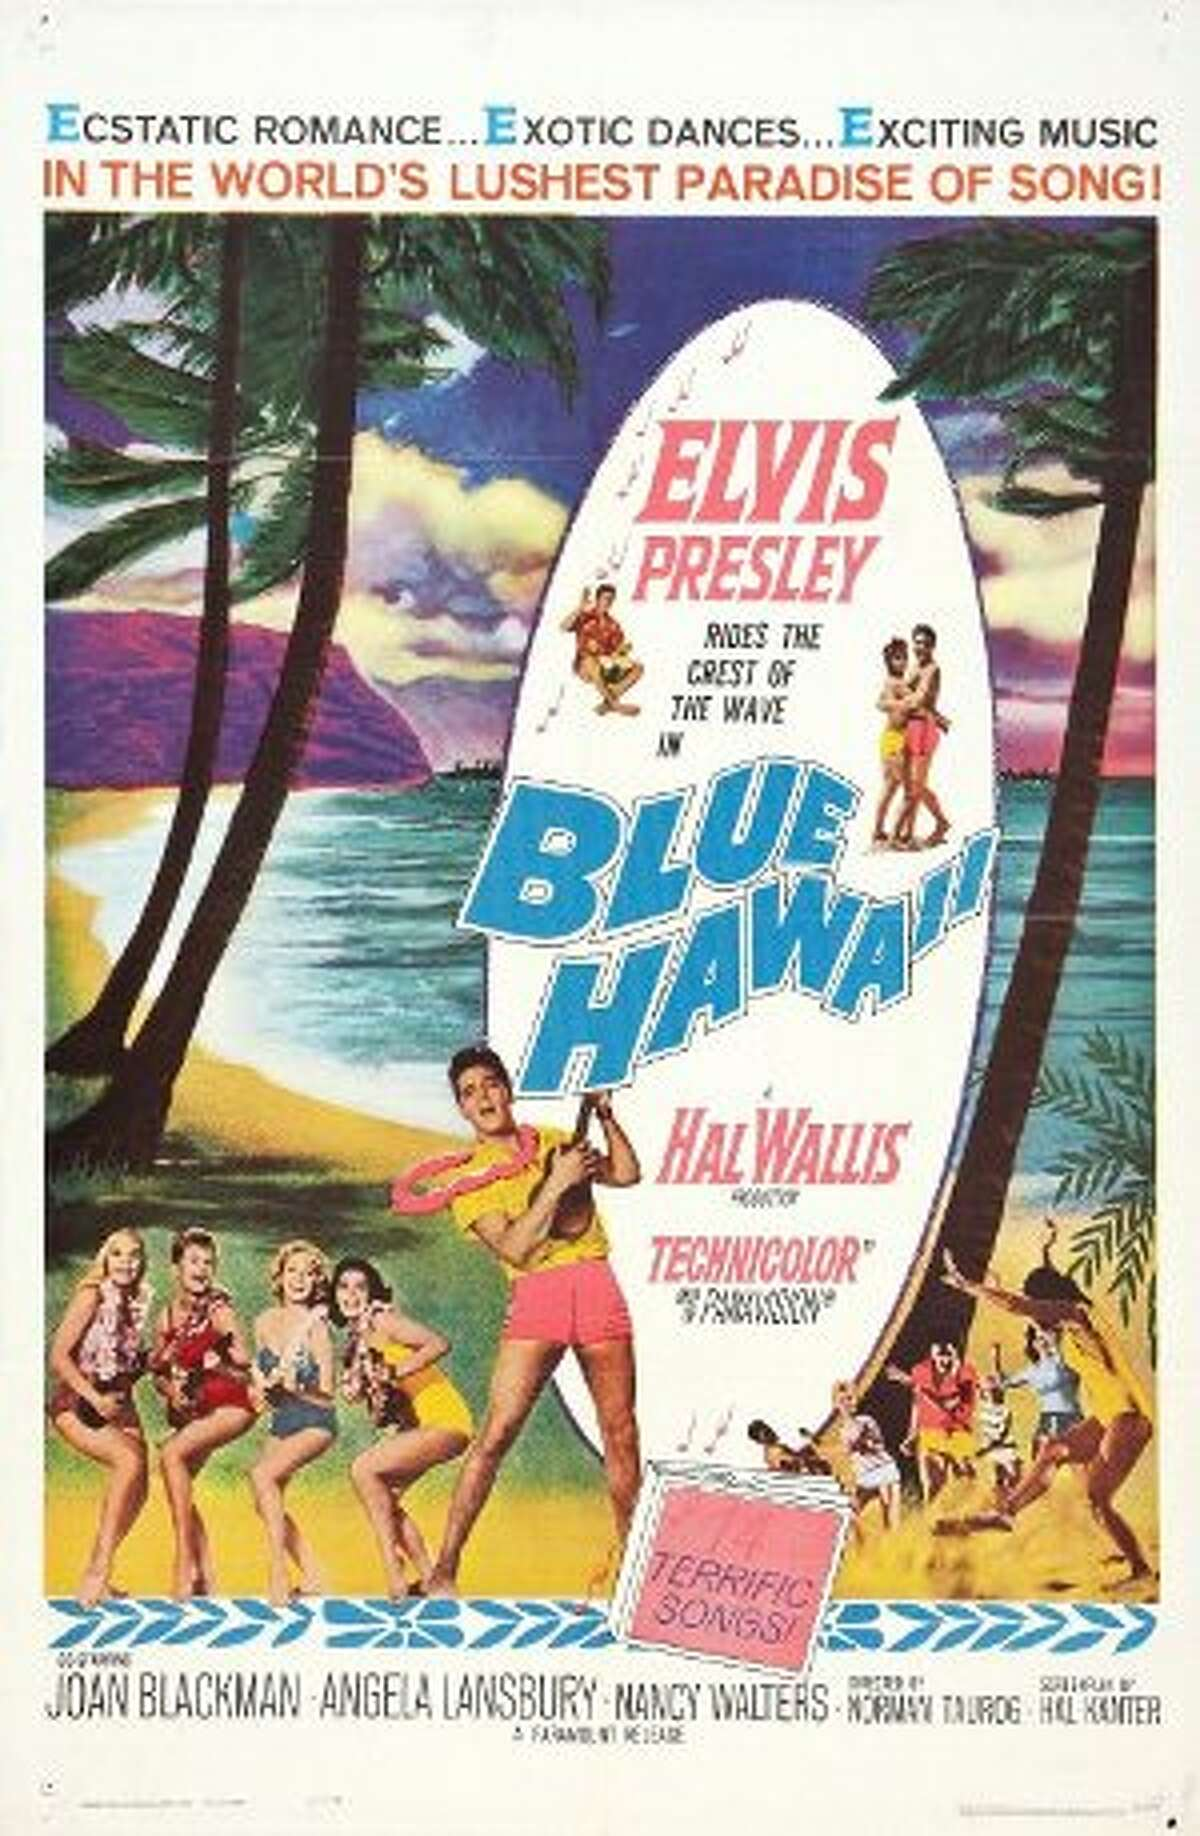 August is finally here. Summer is winding down, and we're in the home stretch for Labor Day, but there's still plenty going on in San Antonio this month.August 6: Free End-of-Summer Movie Series - 'Blue Hawaii' at Arneson River Theatre, 418 Villita Street. The free showing also includes Hawaiian food and performances by Baila Pacifica Polynesian Dancers and the band Sol Tribe. Movies begins at dusk, and guest are encouraged to bring lawn chairs and blankets. Call (210) 207-3677 for more details.